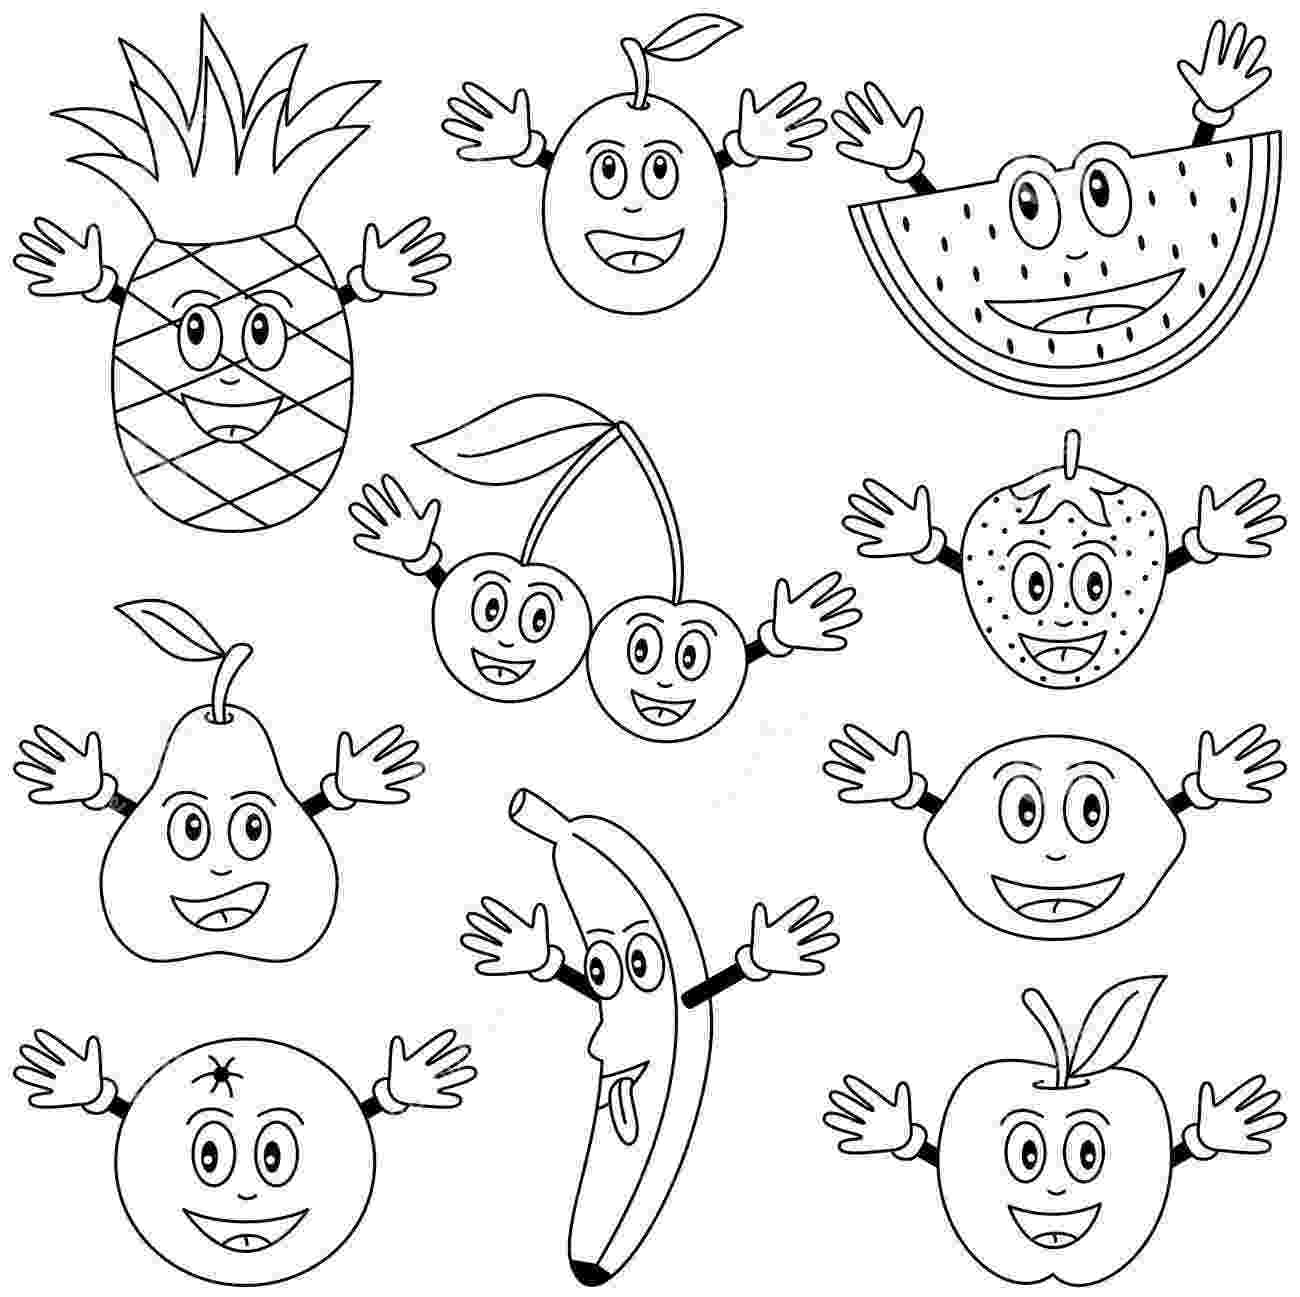 fruits coloring sheets cartoon fruits coloring pages crafts and worksheets for coloring fruits sheets